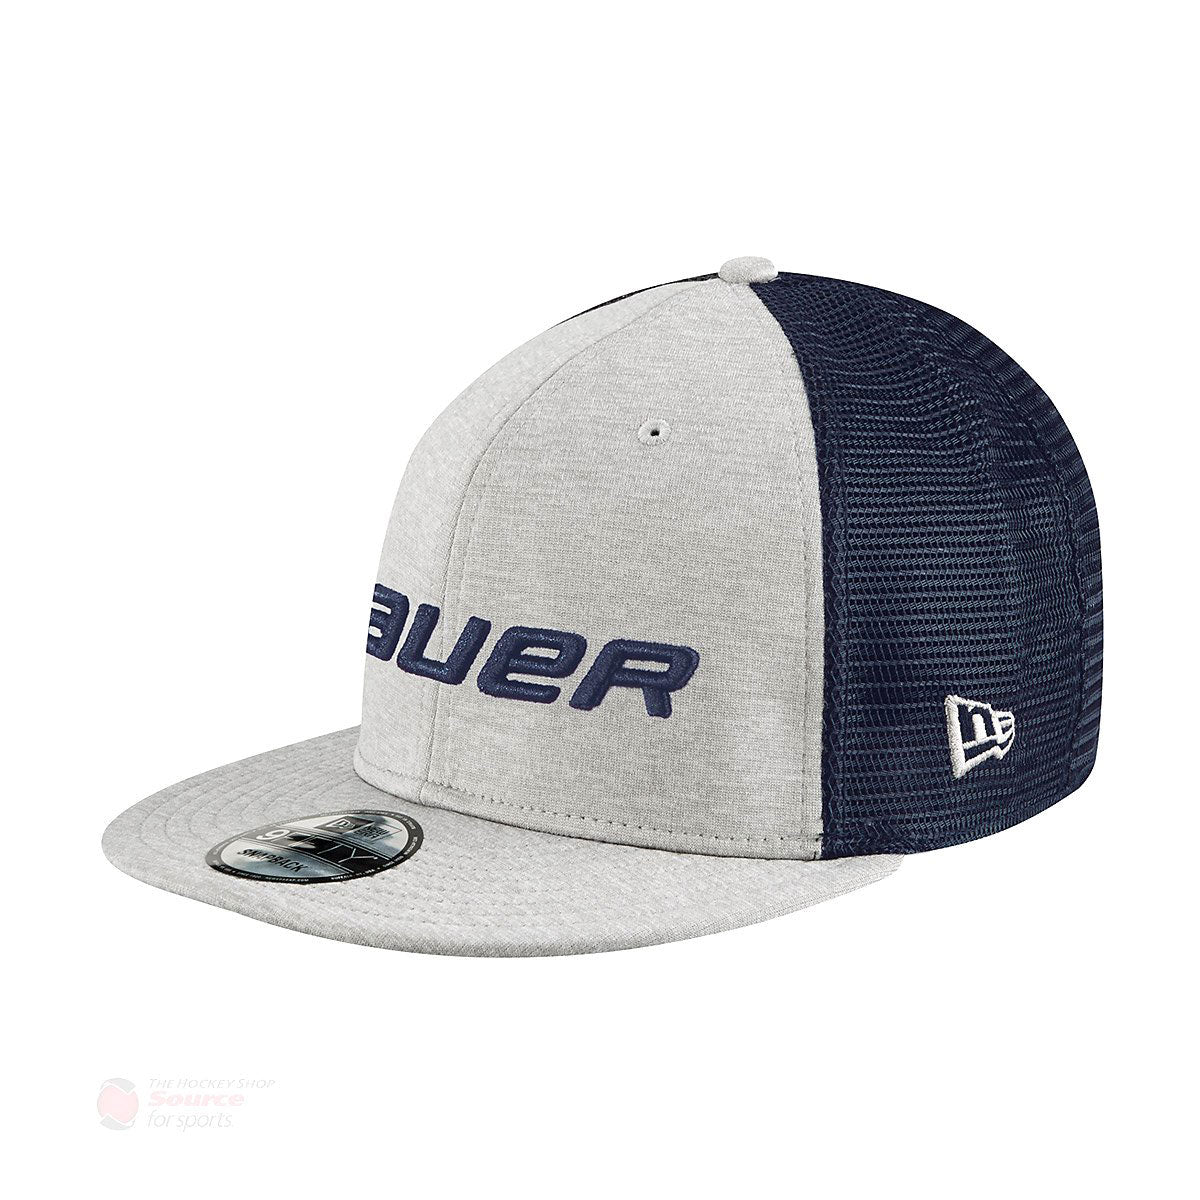 Bauer 9Fifty Snapback Hat